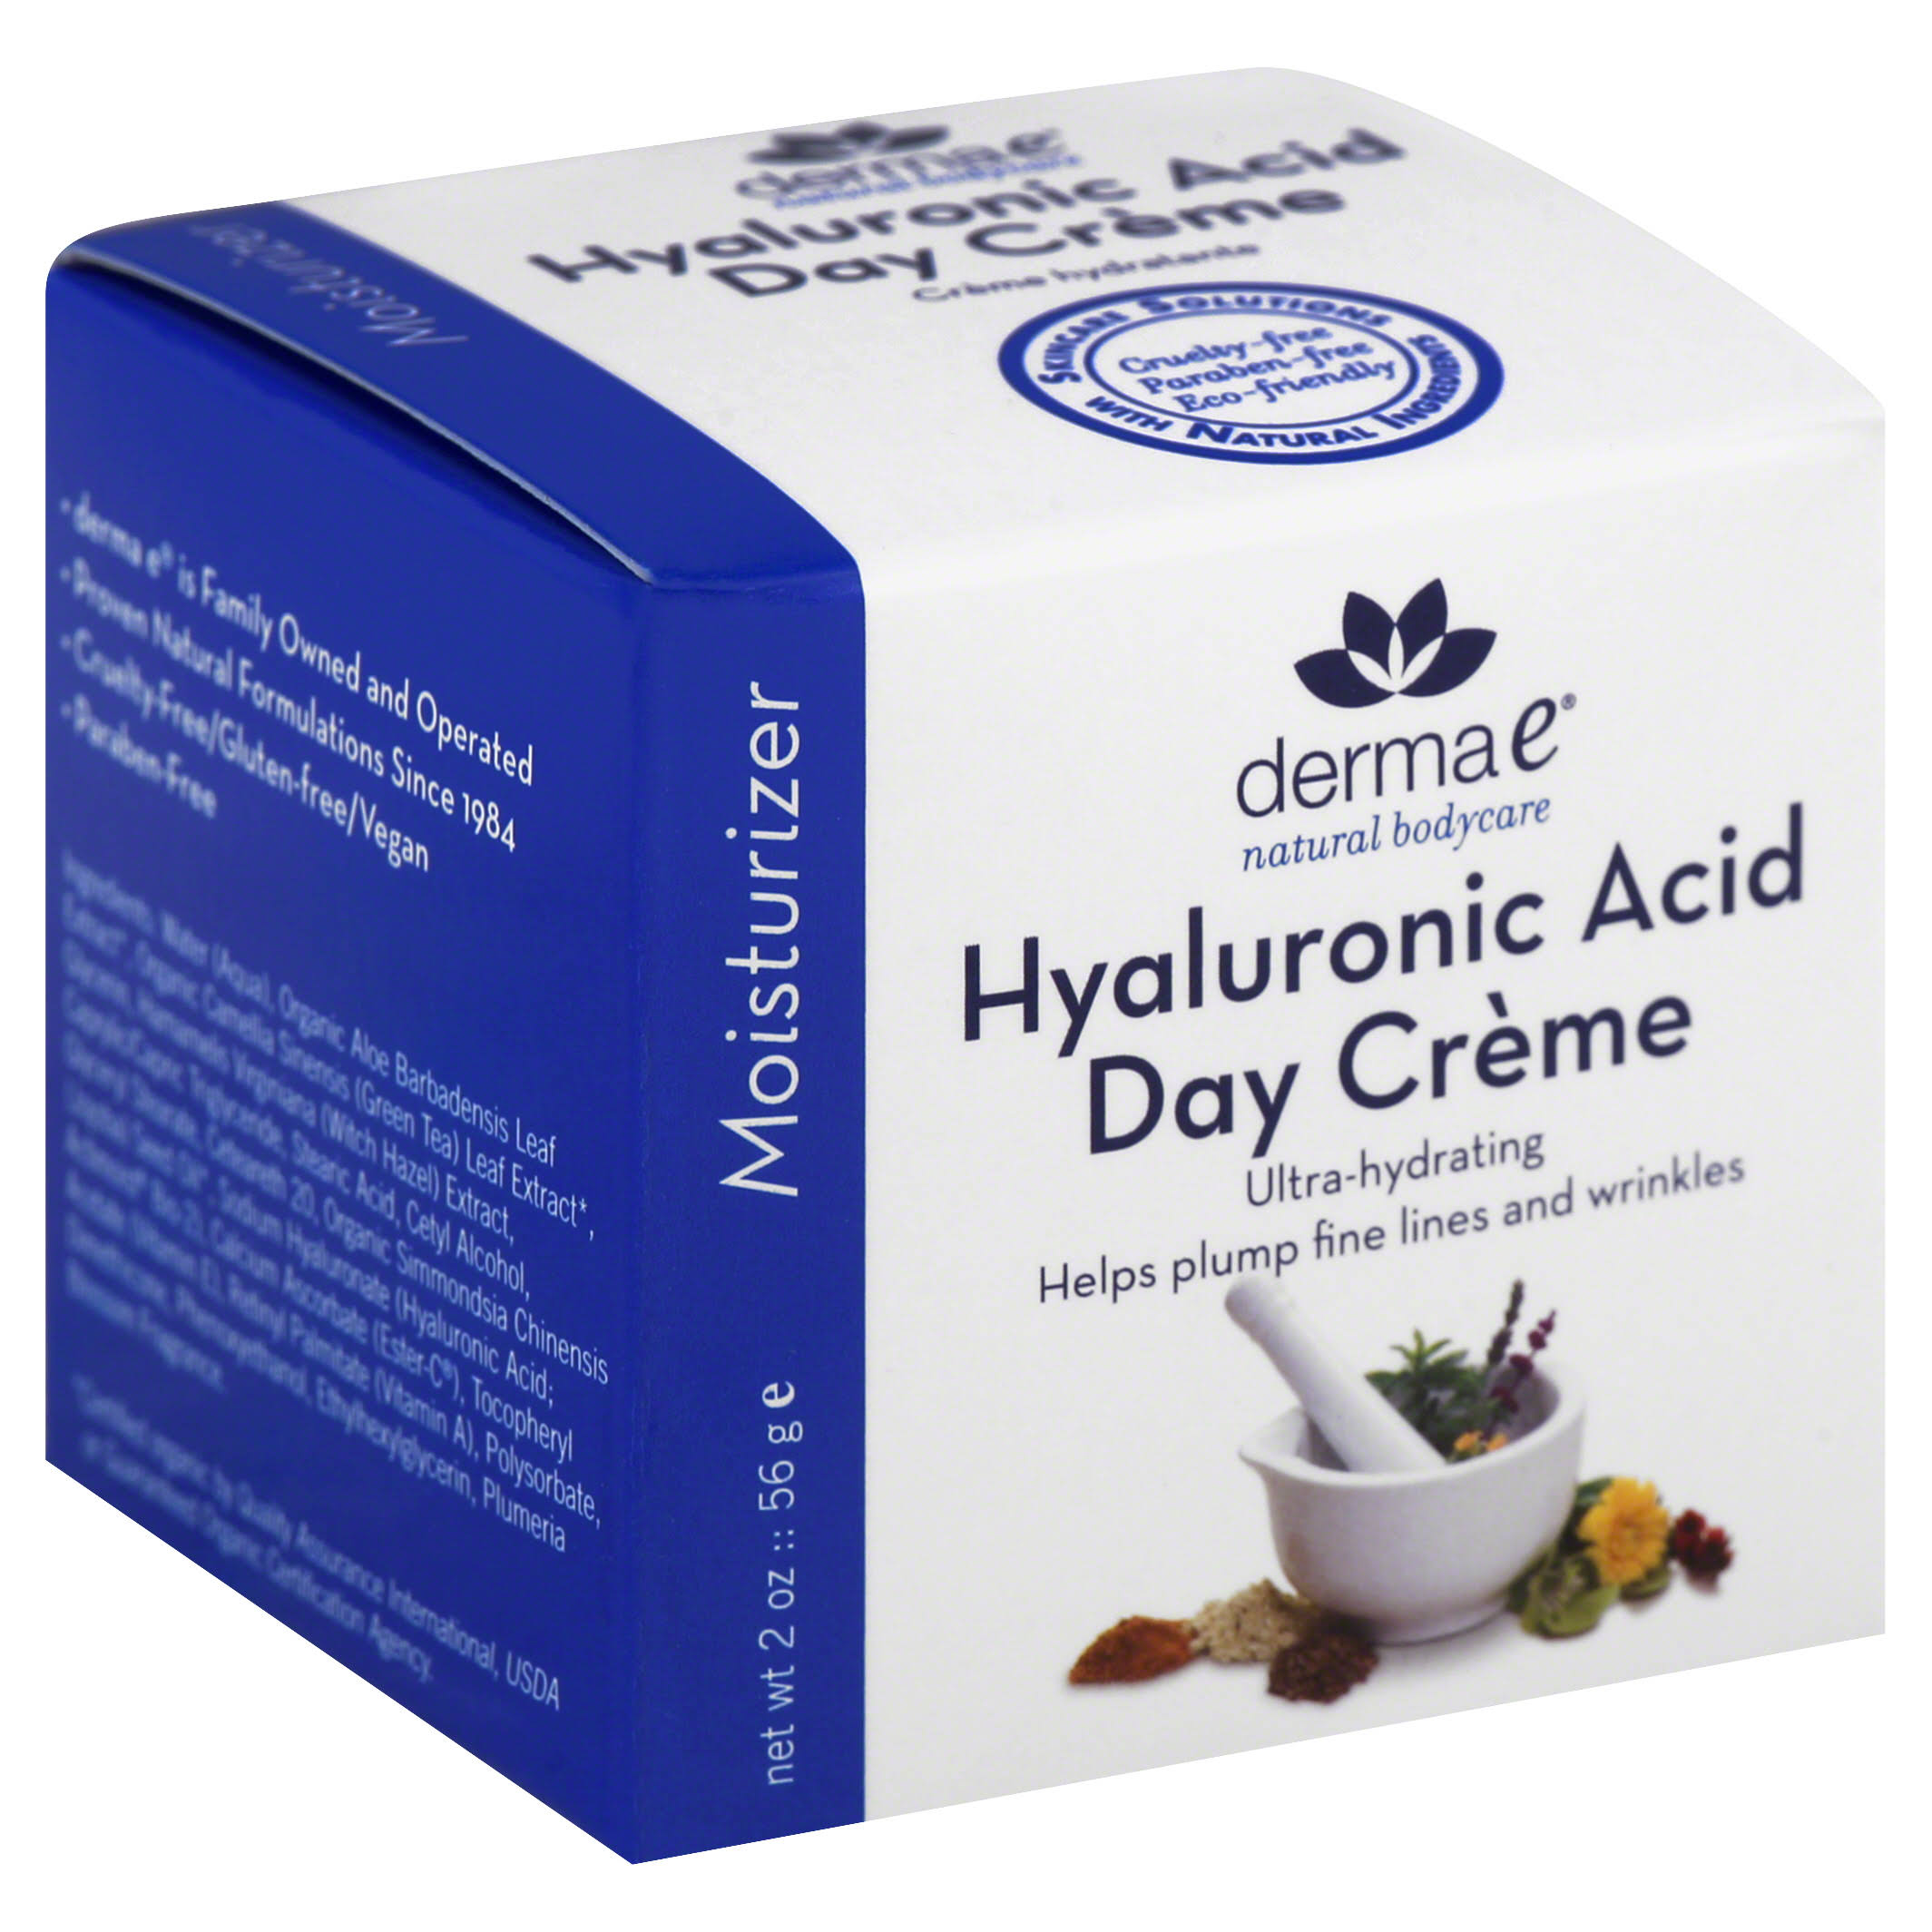 Derma E Hydrating Day Creme - 56g